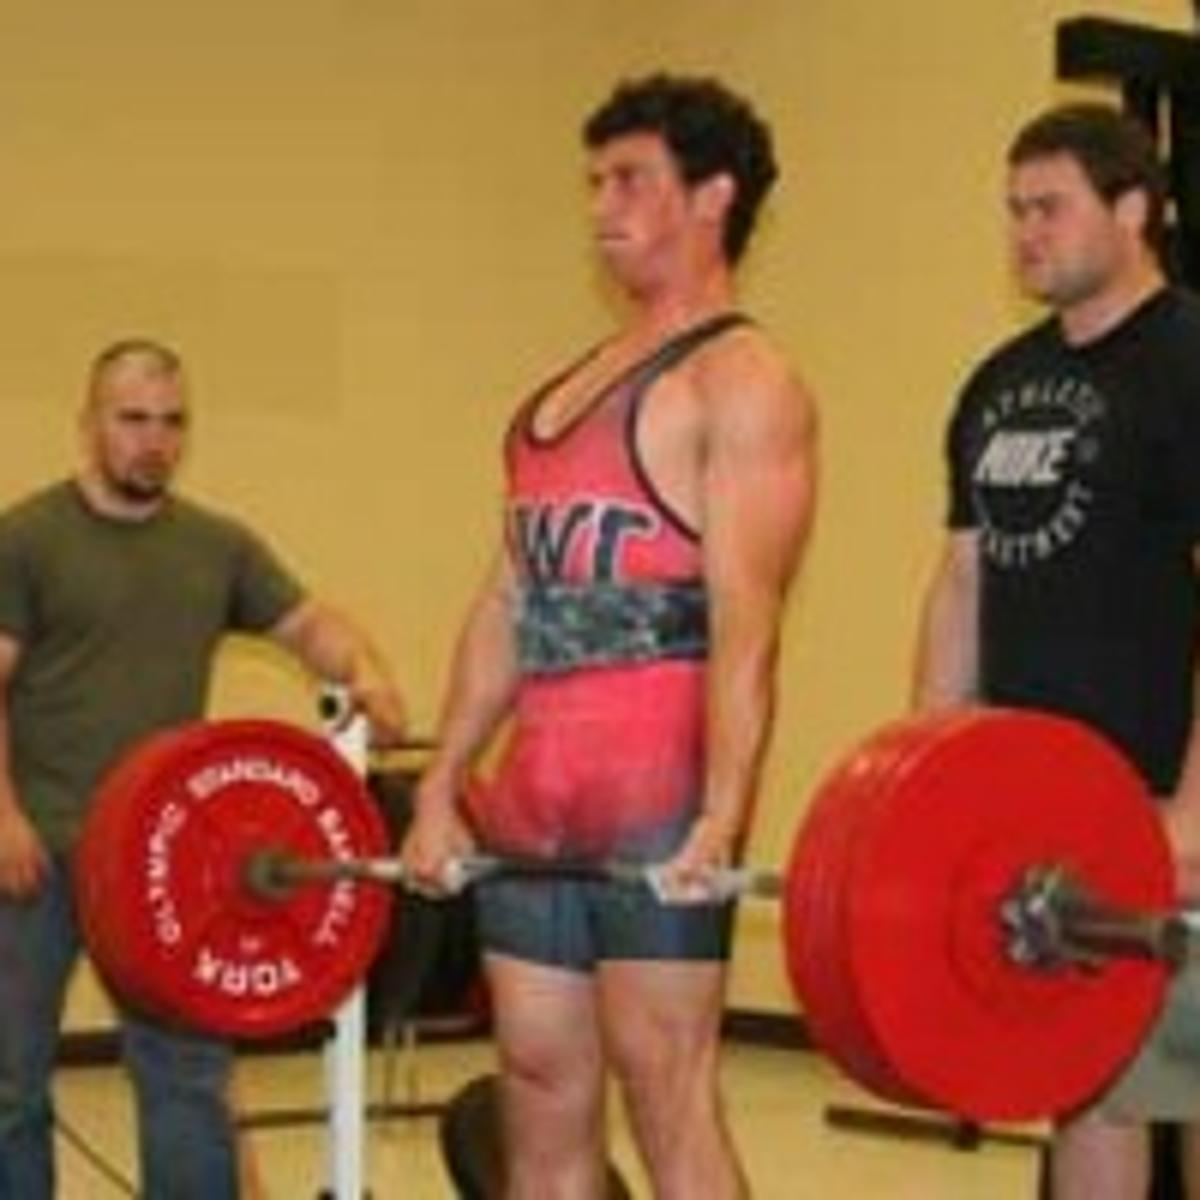 Ithacan wins division, records fall at powerlifting meet